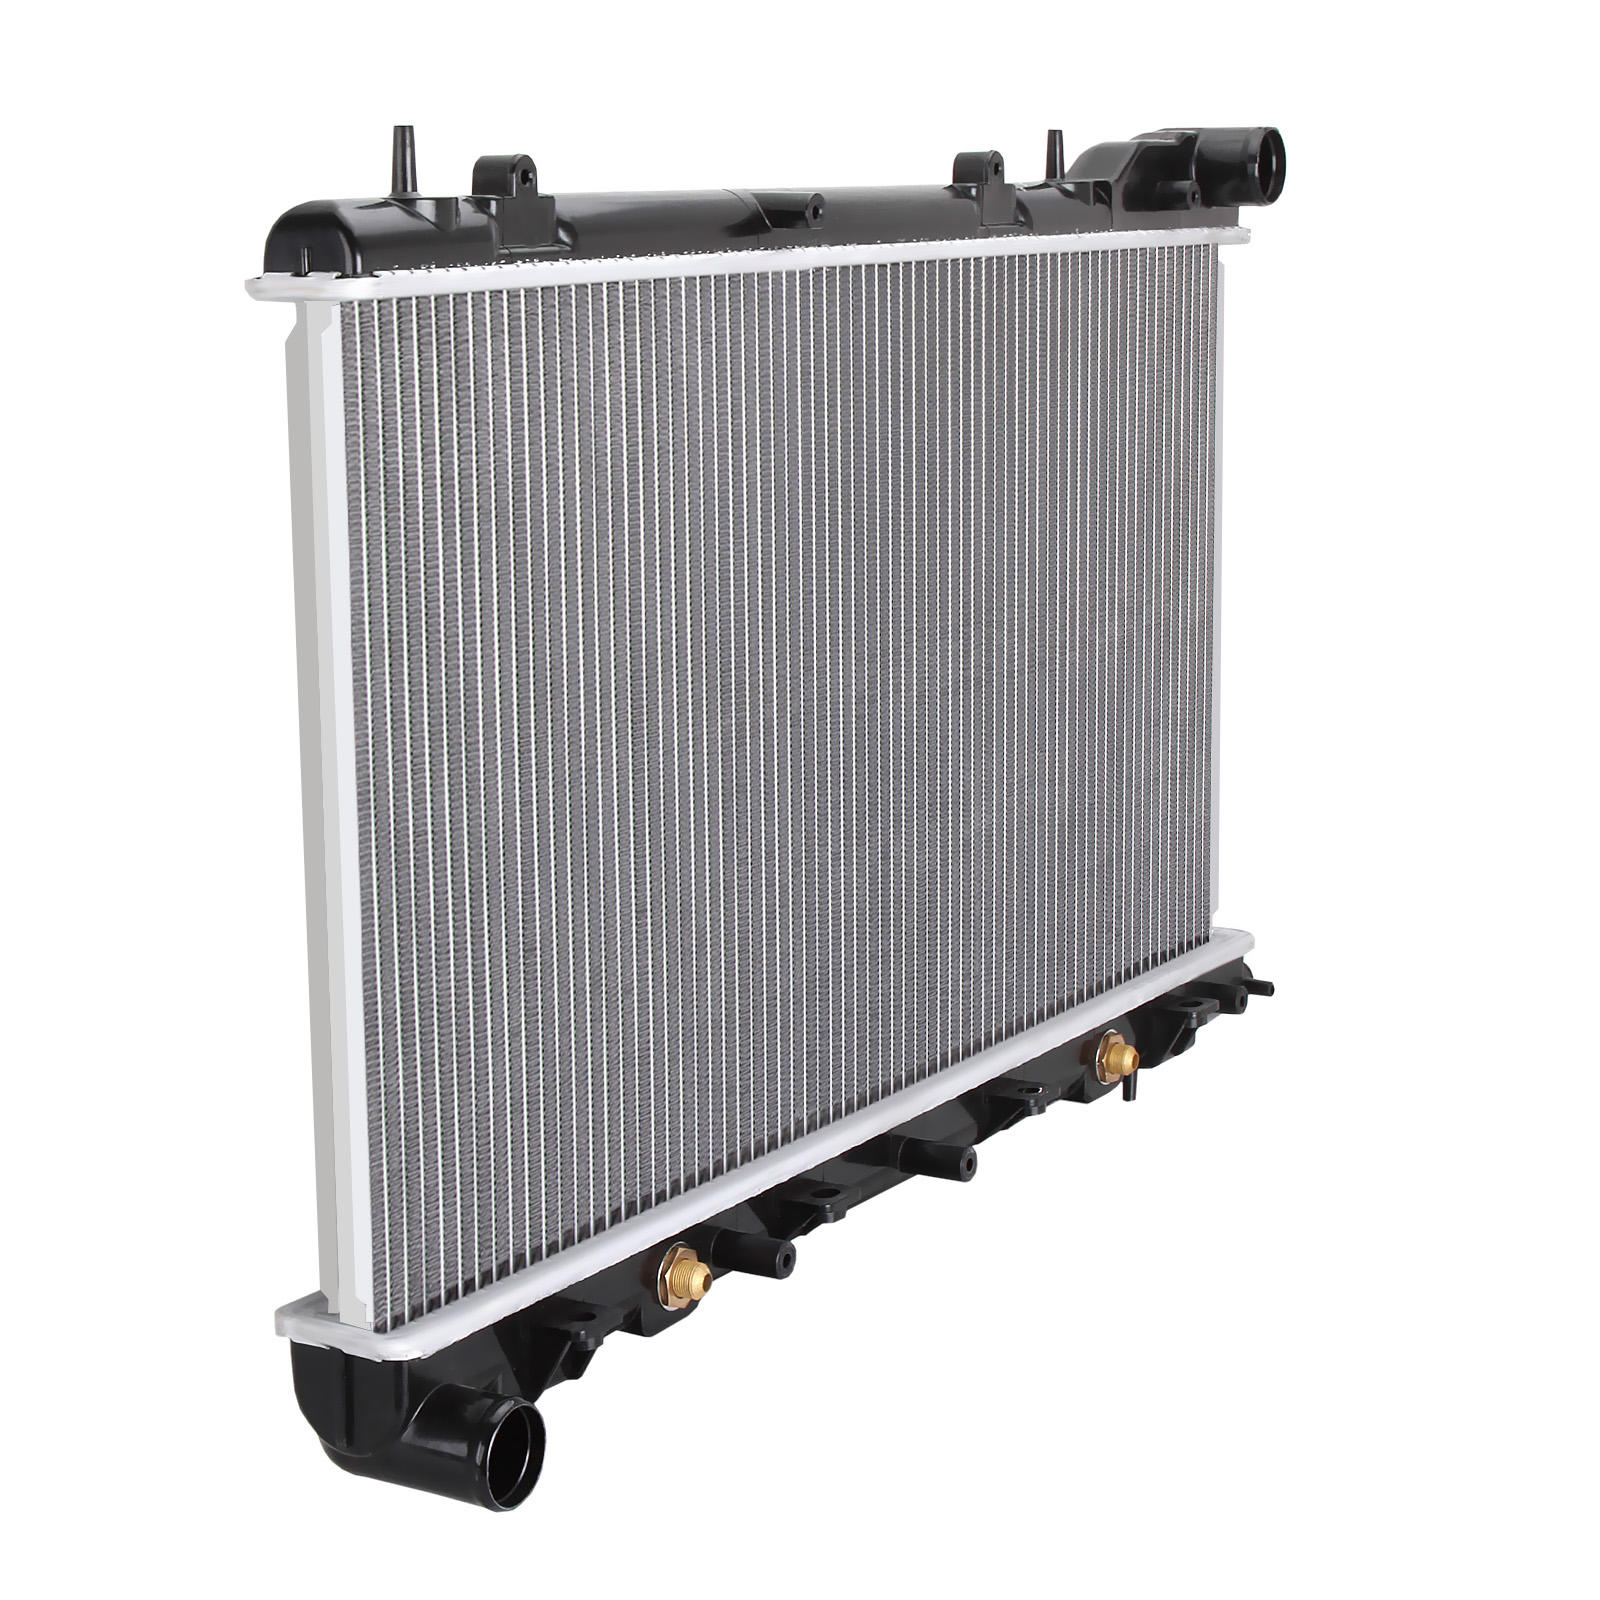 PREMIUM RADIATOR FOR SUBARU FORESTER GT SF5 TURBO '97-'02 AUTO/MANAUAL